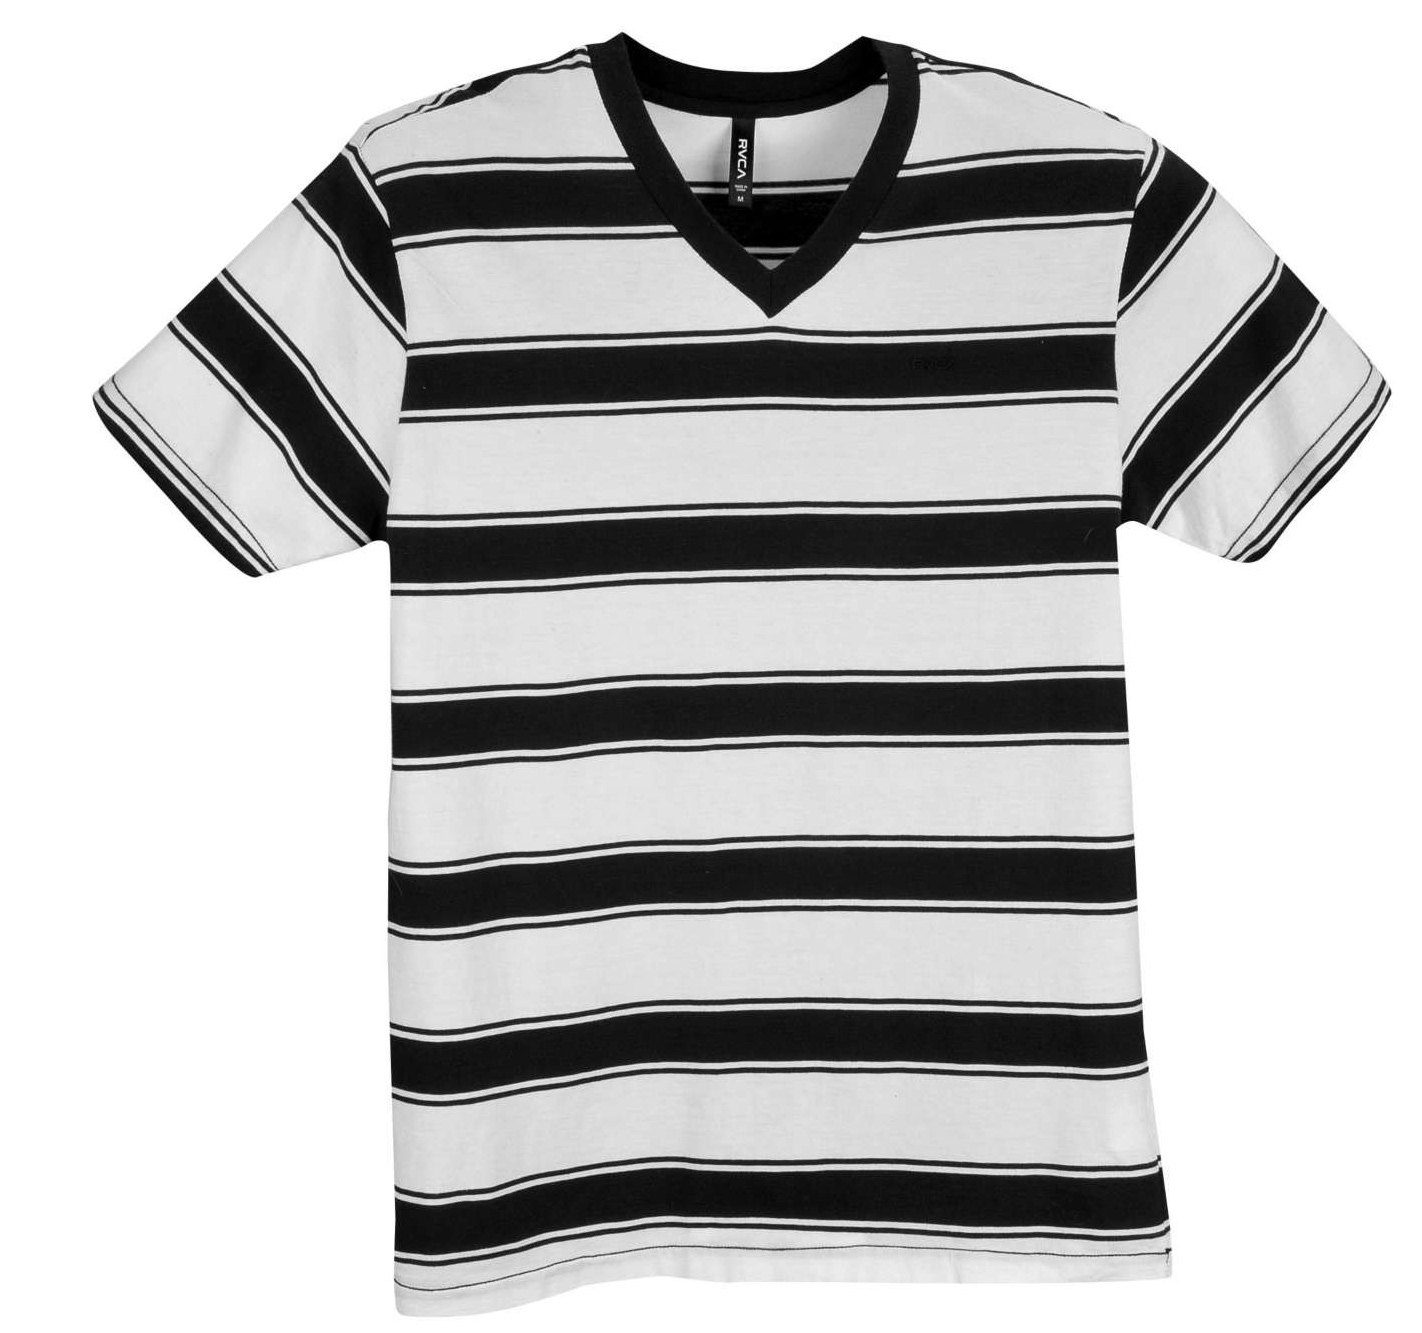 Surf Key Features of The RVCA Phill Up T-Shirt: Regular Fit Crew Neck Short Sleeve Cotton Jersey Yarn-Dyed Stripe Tank Solid Binding At Neckband And Armhole Opening RVCA Embroidery At Left Chest - $24.95